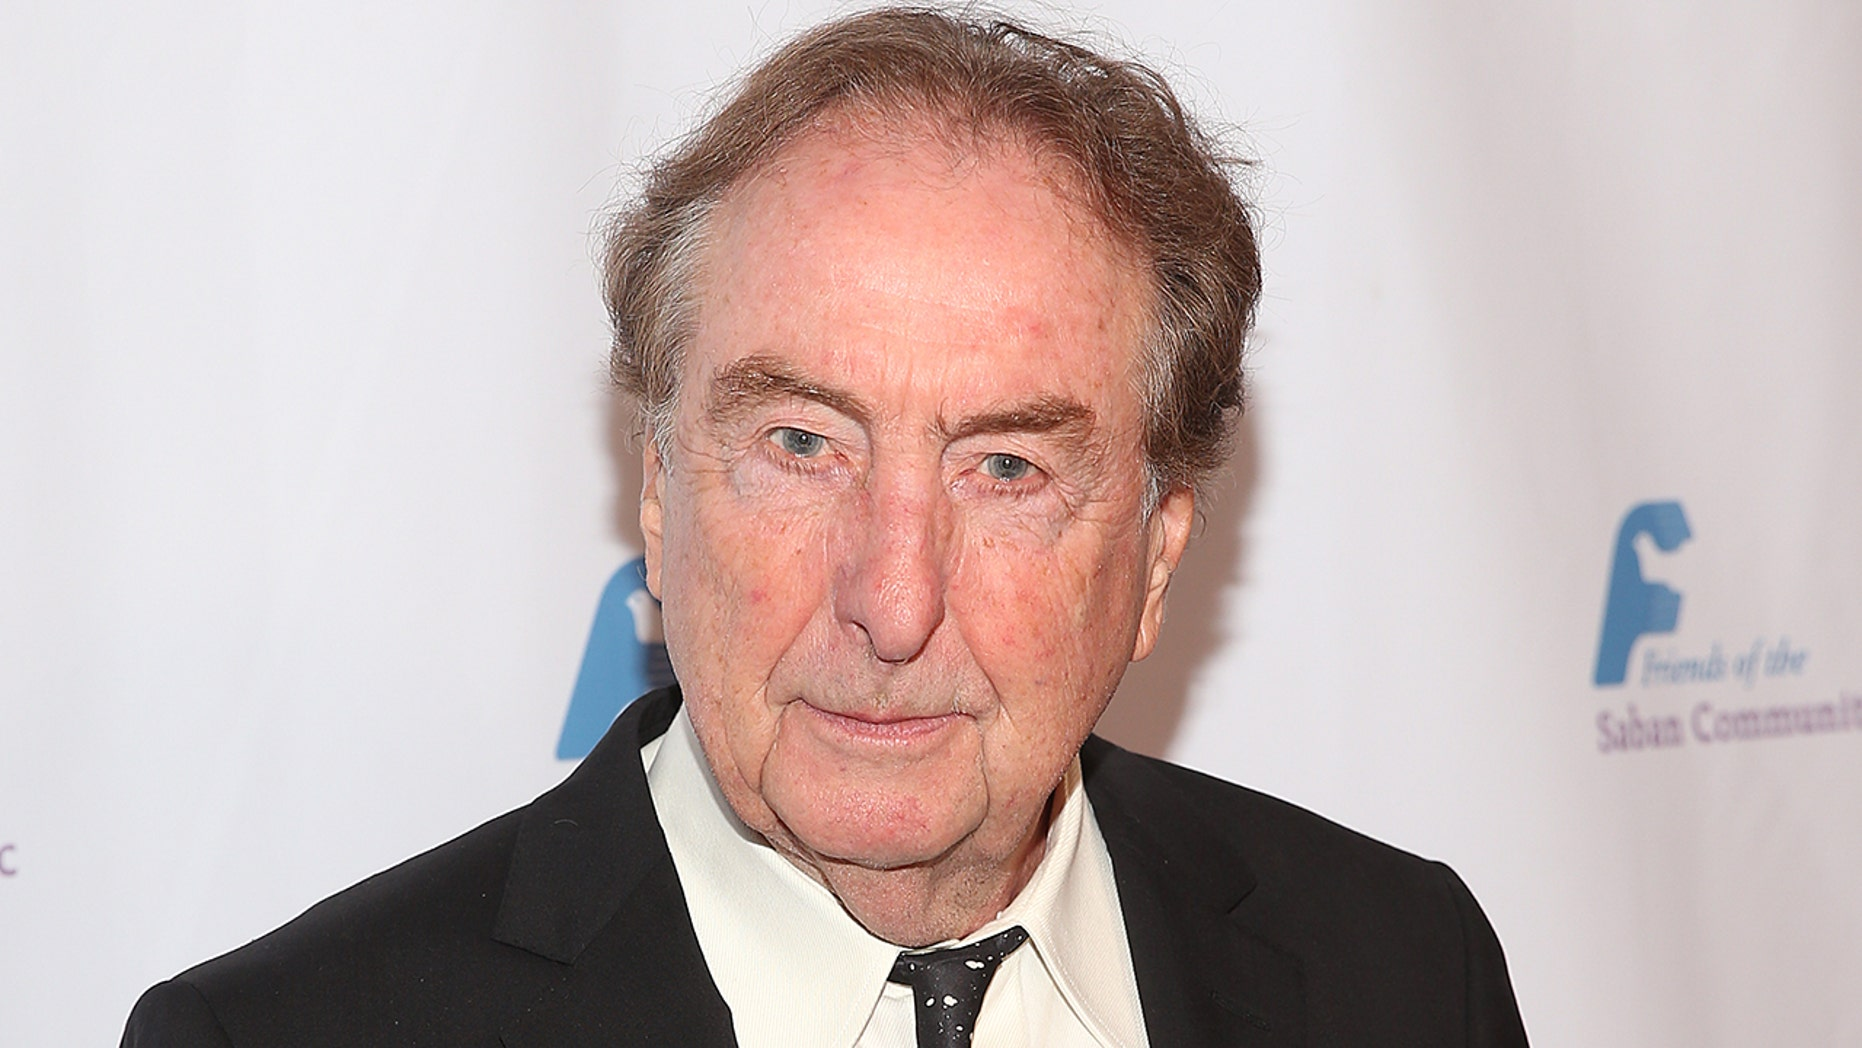 Eric Idle's home was reportedly evacuated after a potentially hazardous material scare.